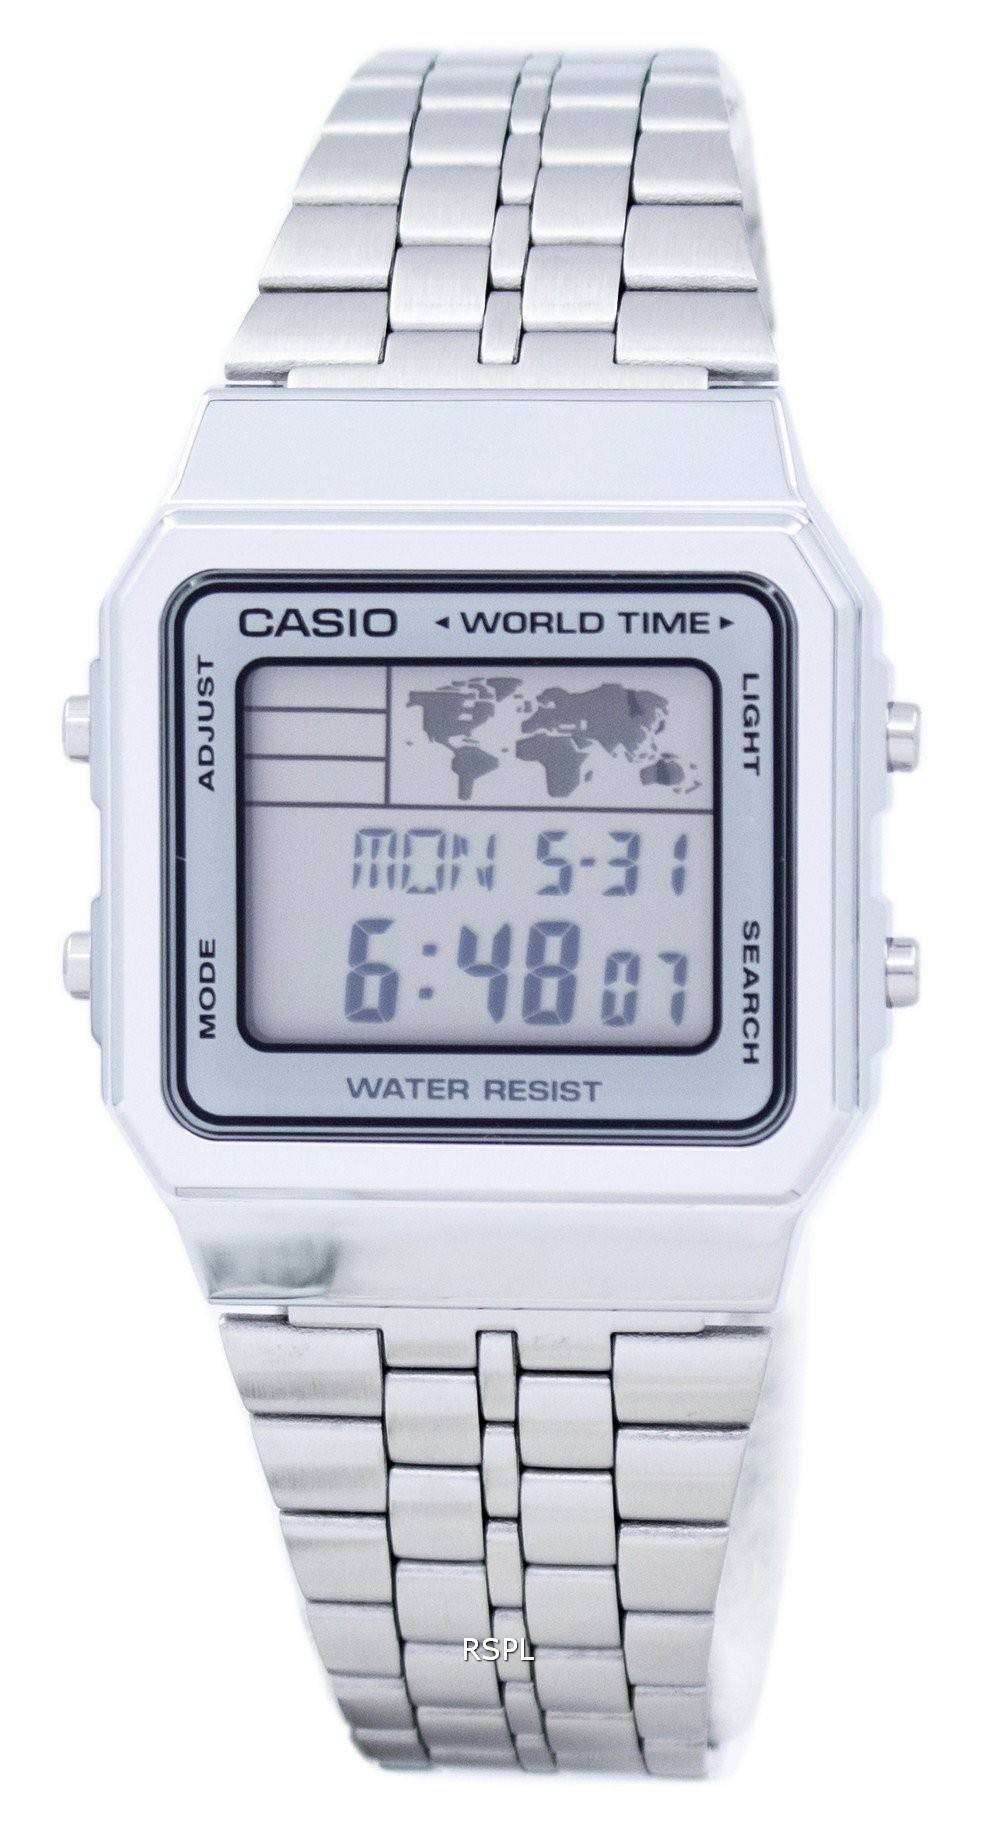 casio alarm world time digital a500wa 7df men 39 s watch. Black Bedroom Furniture Sets. Home Design Ideas